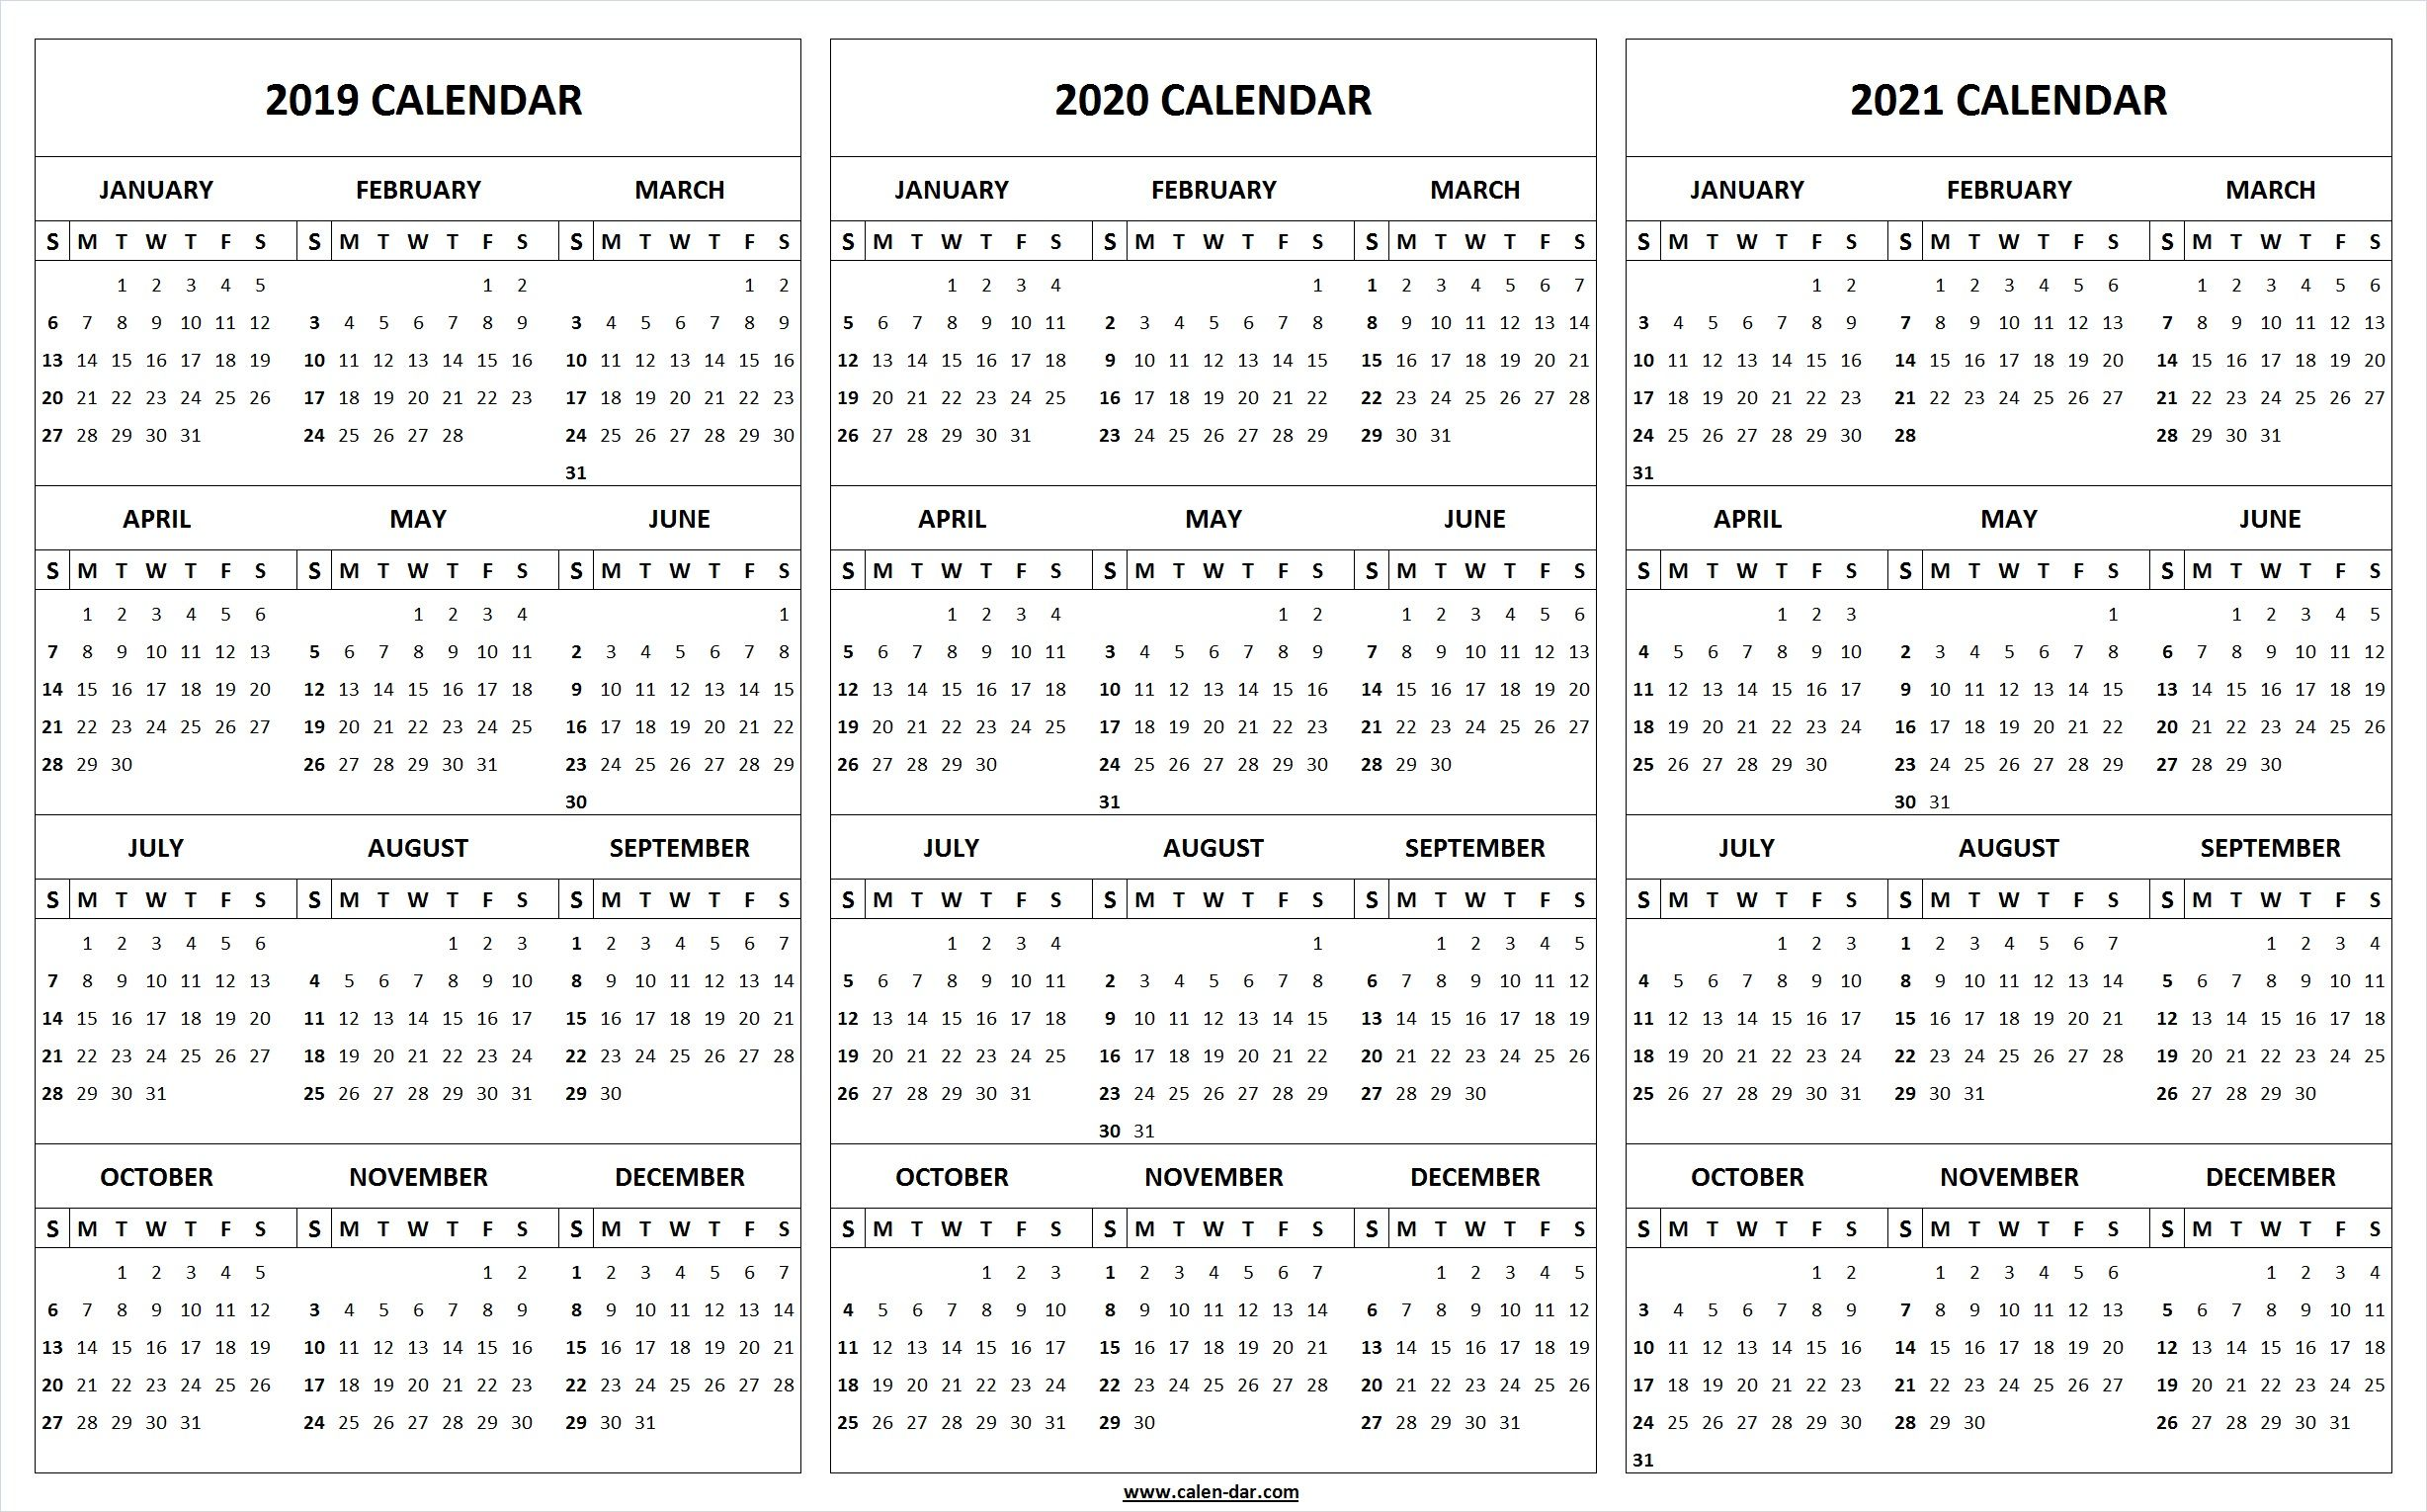 Print Blank 2019 2020 2021 Calendar Template Calendar Printables Calendar Template Marketing Calendar Template